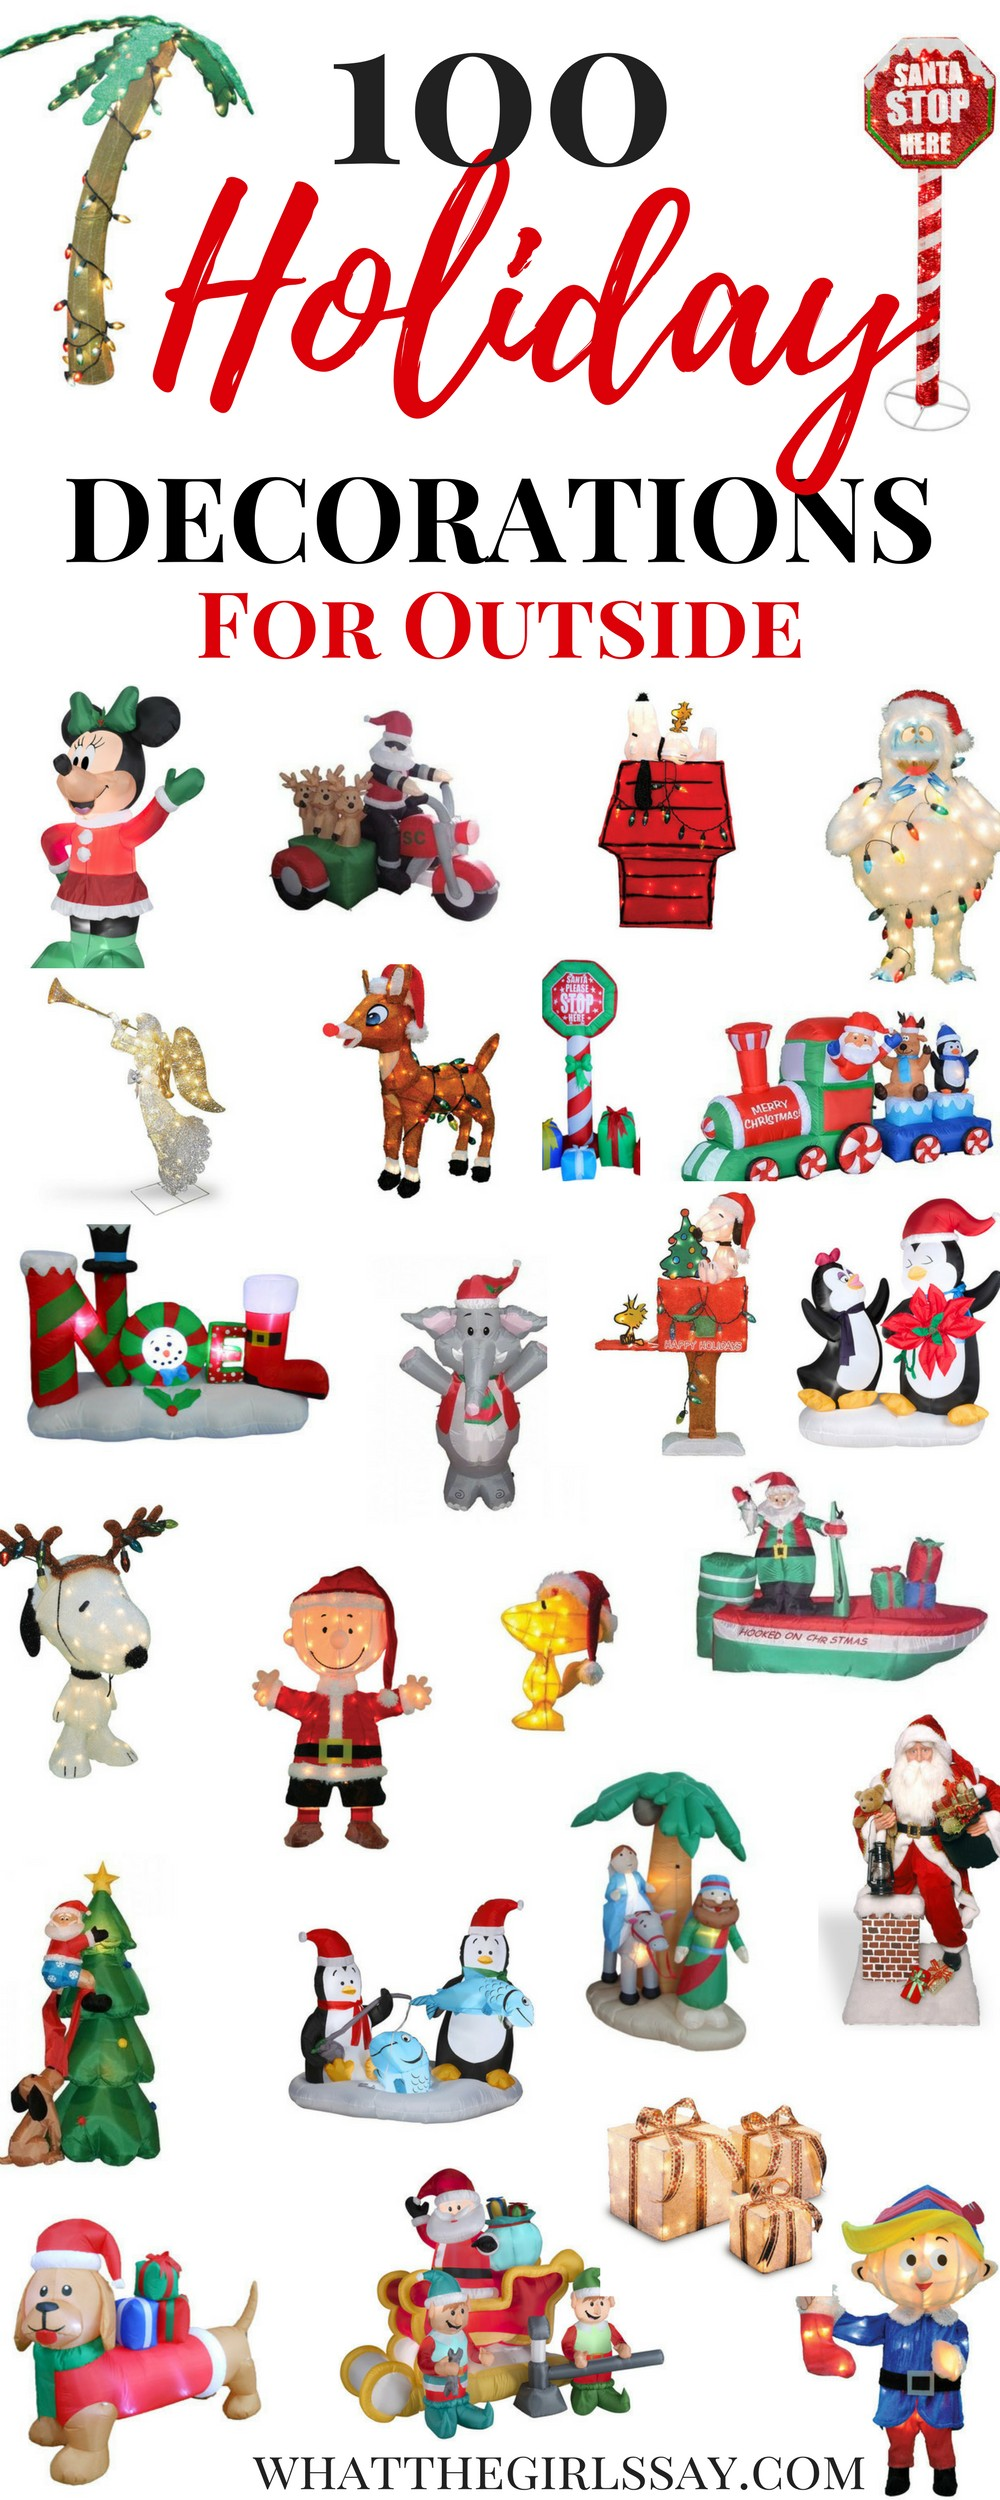 Calendario 2019 En Aragon Recientes 100 Outdoor Christmas Decorations Blog Your Heart Out Of Calendario 2019 En Aragon Recientes 100 Outdoor Christmas Decorations Blog Your Heart Out